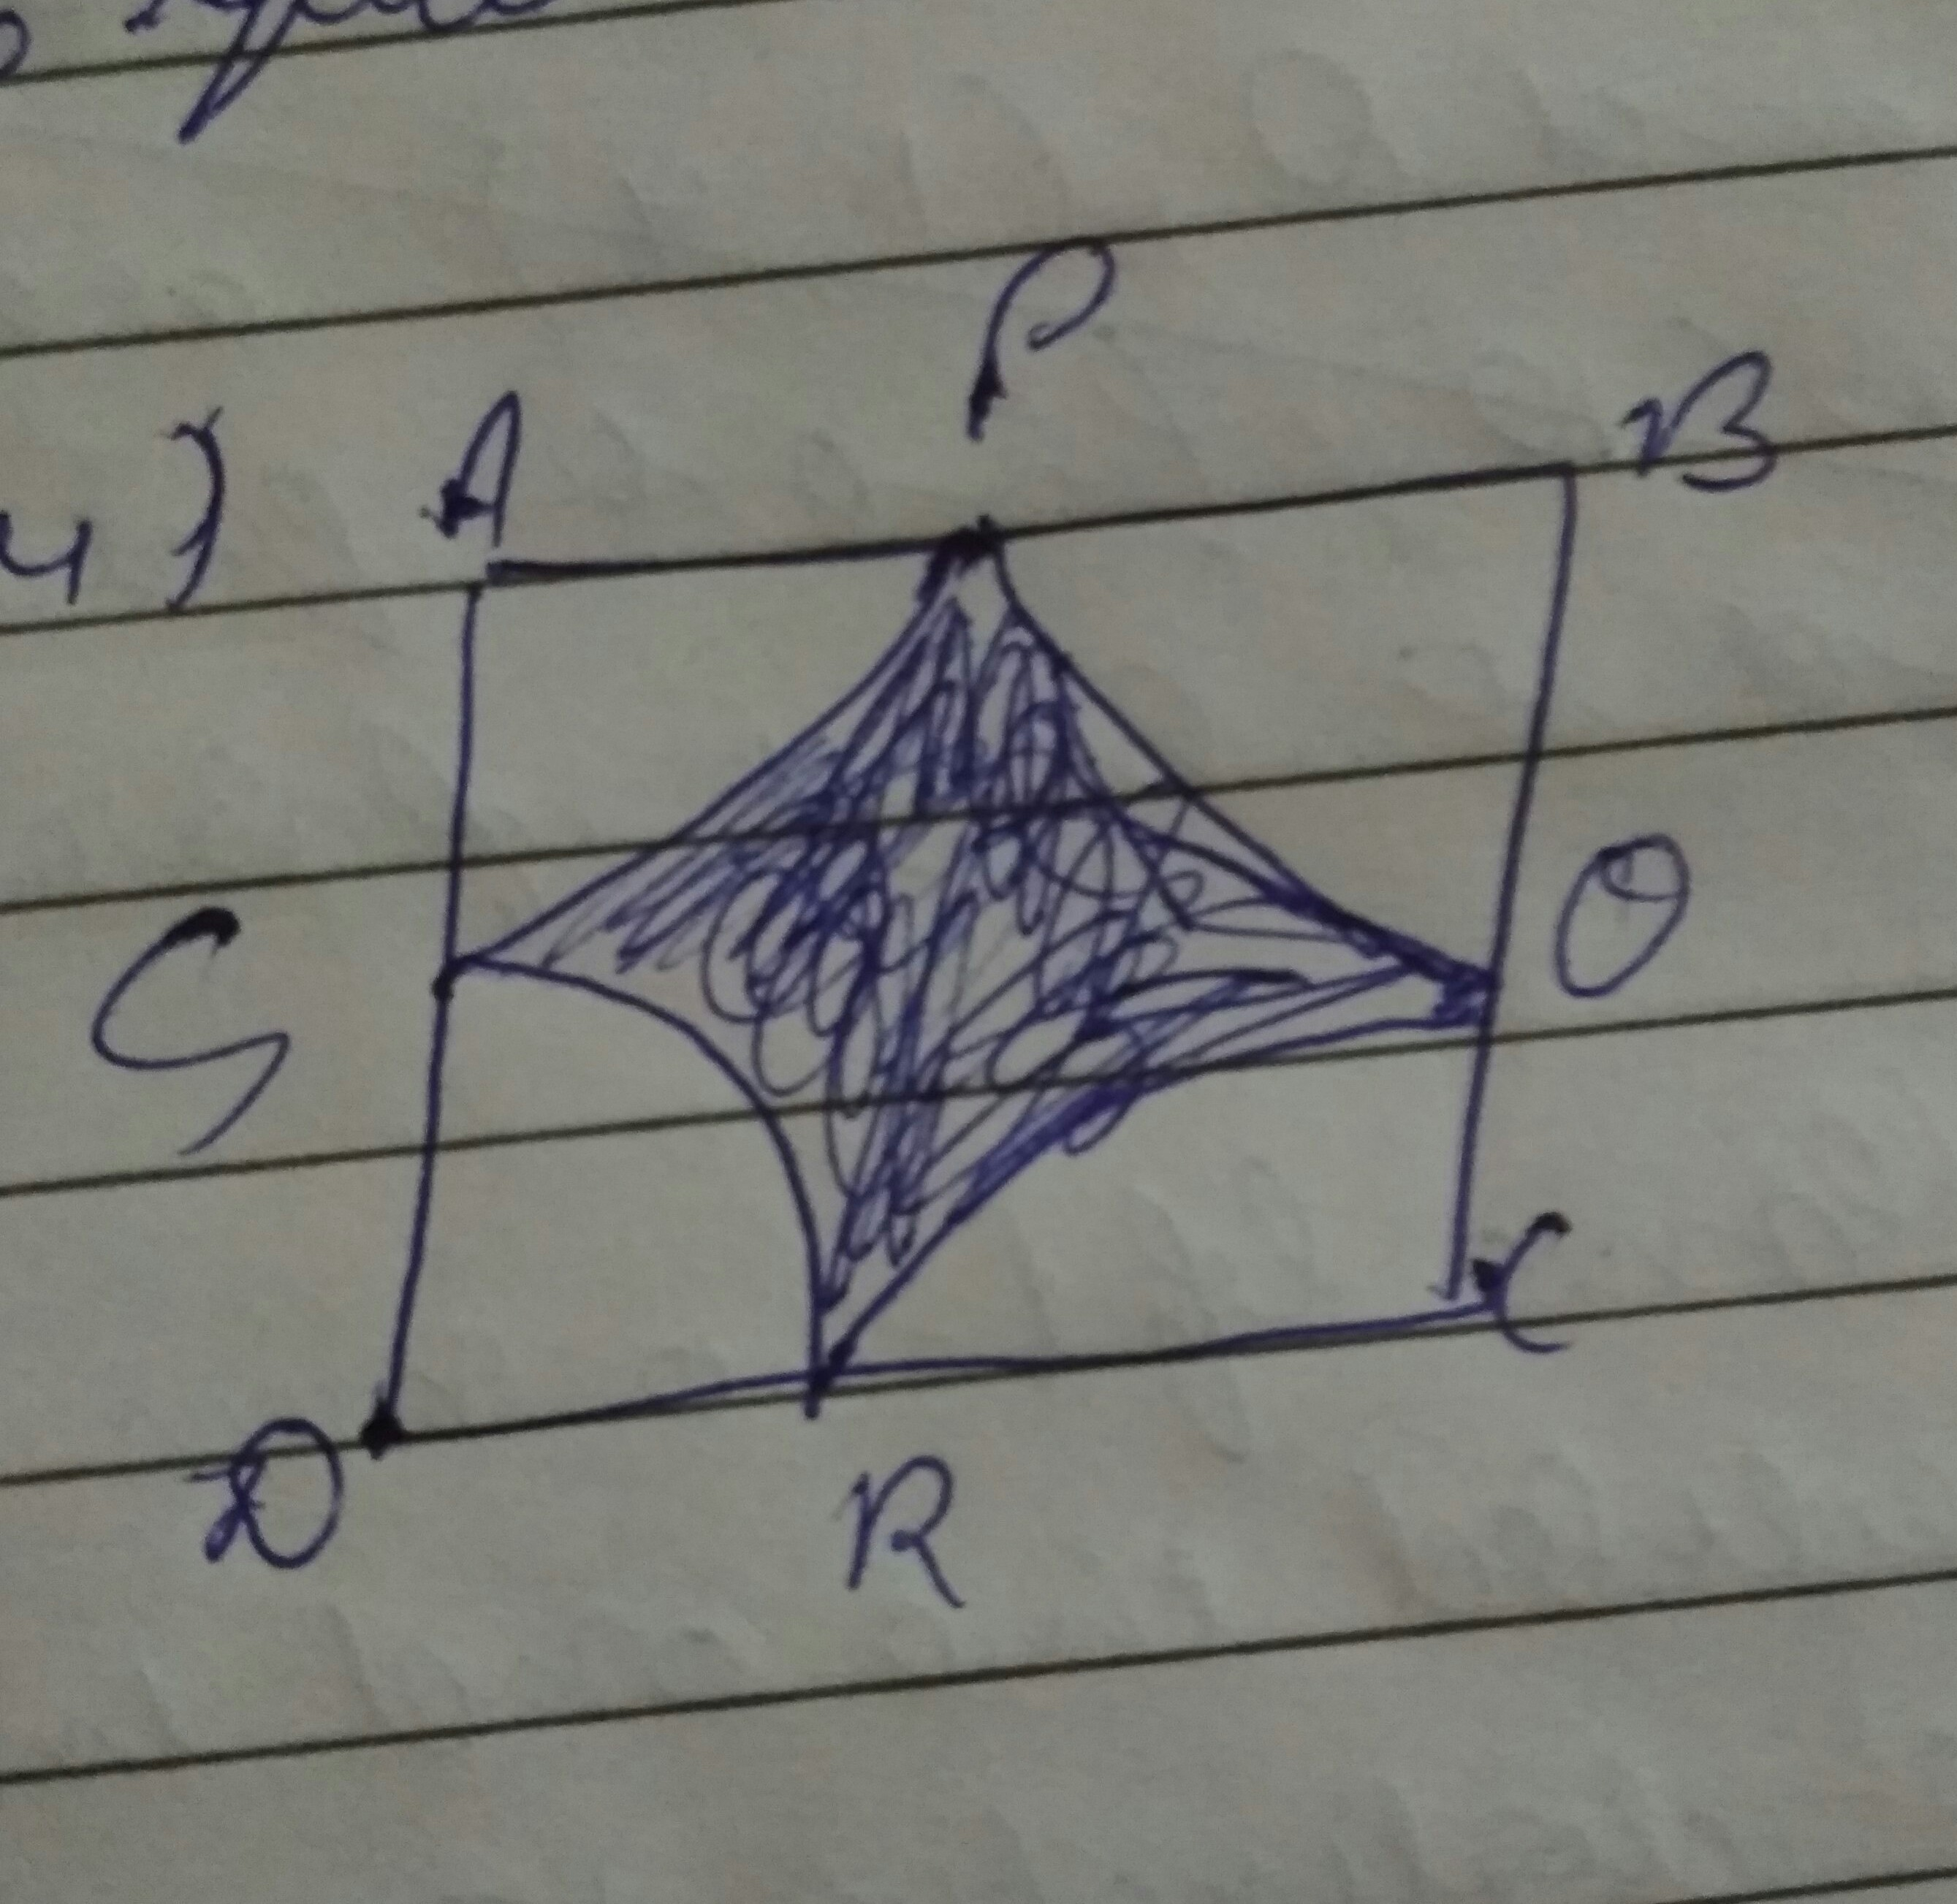 Find The Area Of Shaded Region Where Arc Drawn With Centre